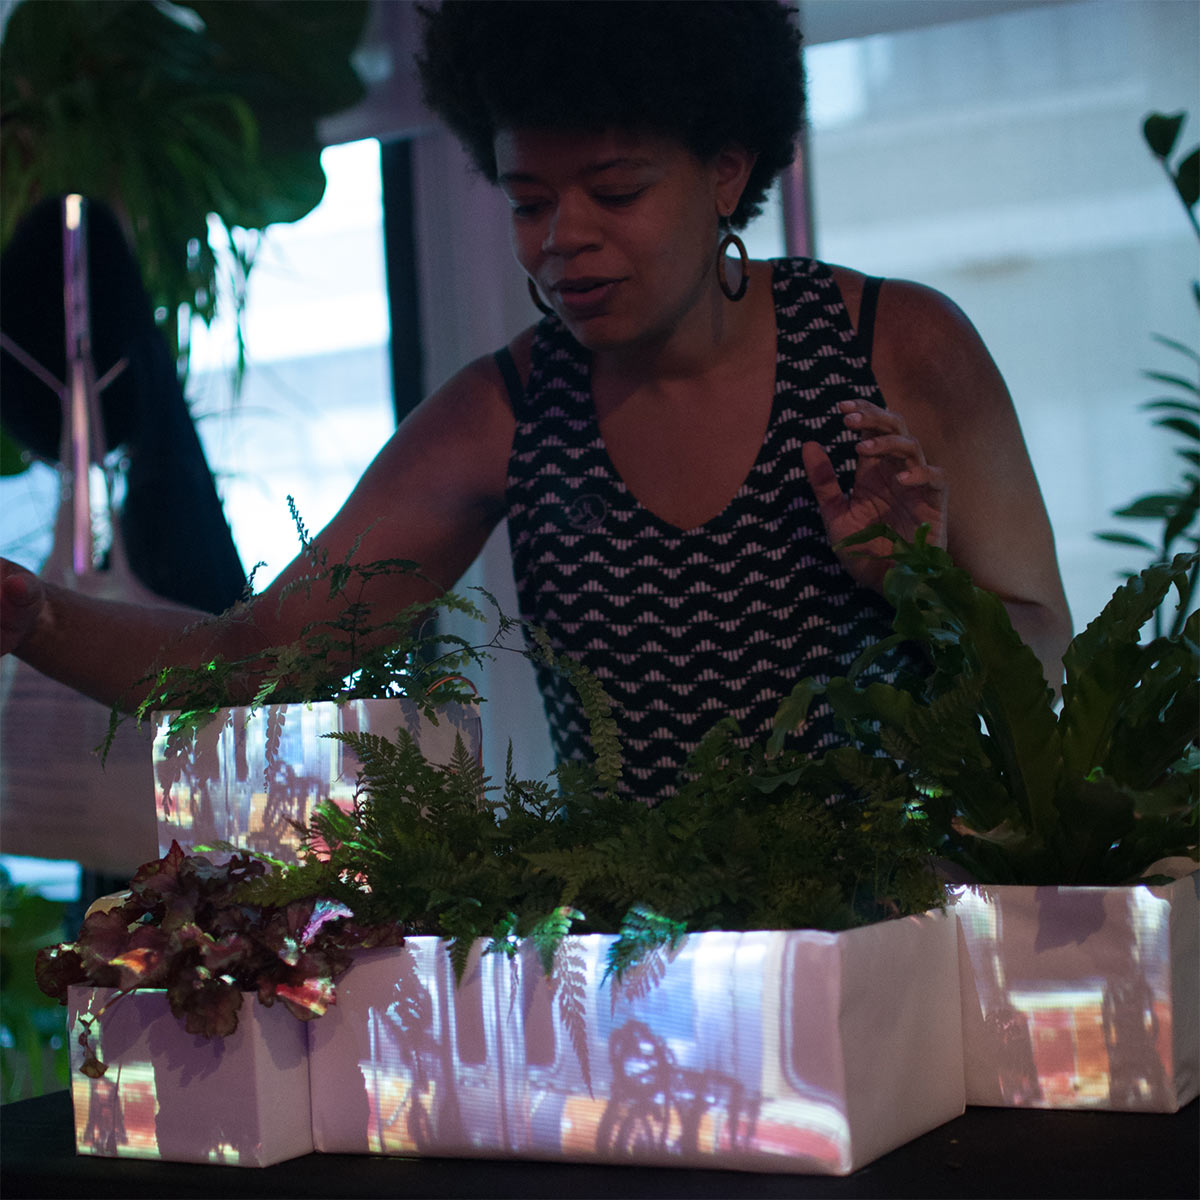 a woman with potted plants with projections on the pots